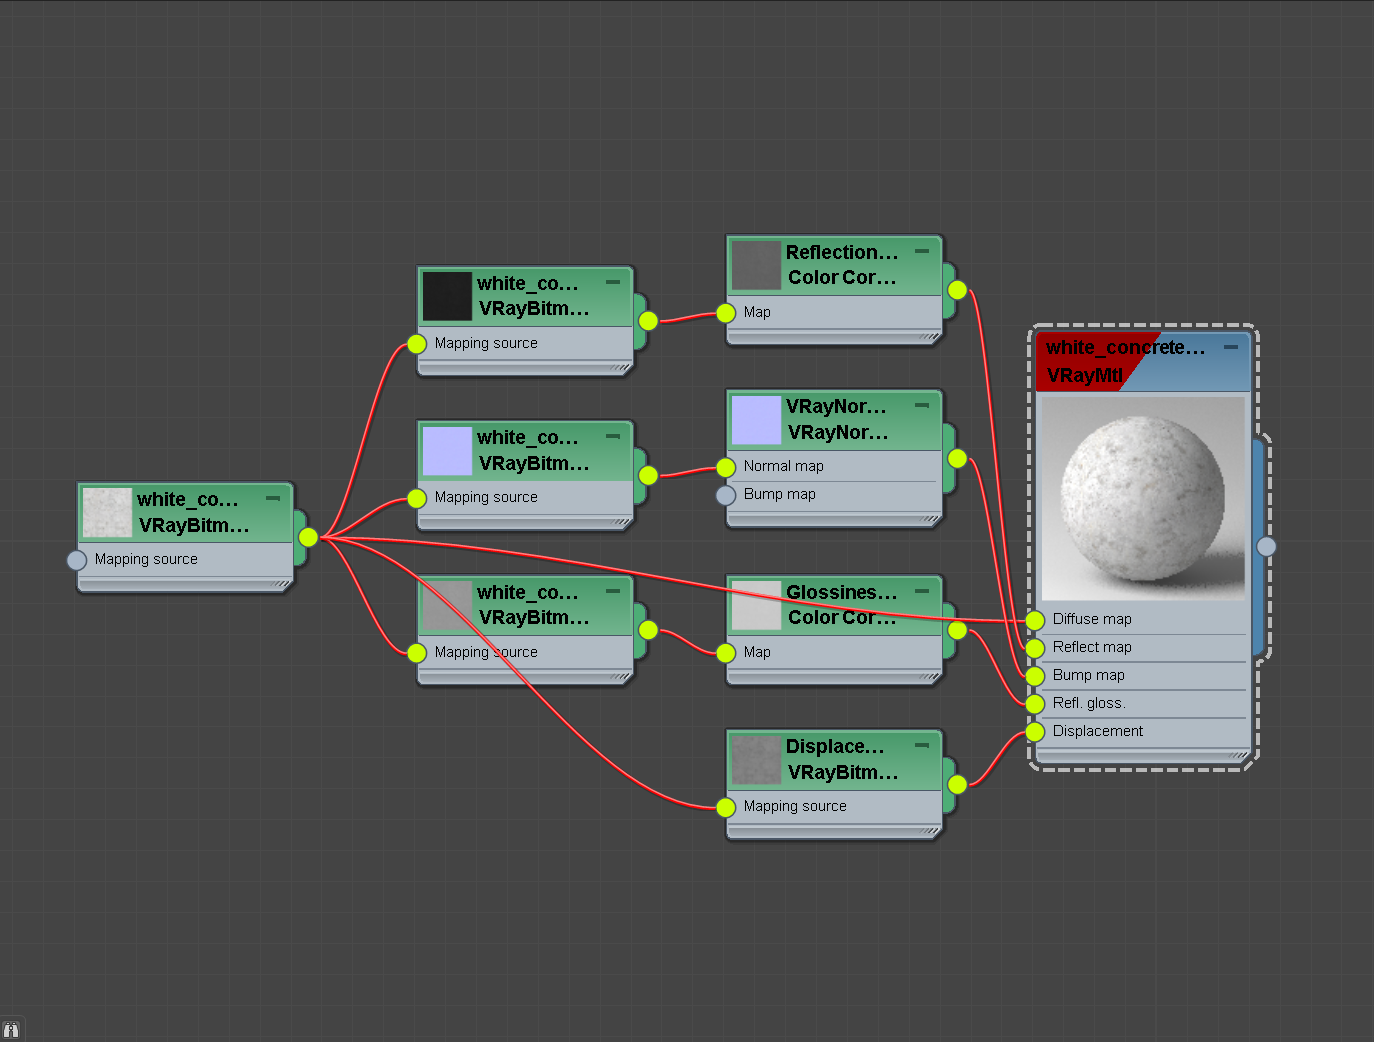 Adds support to mapSource for V-Ray PBR materials